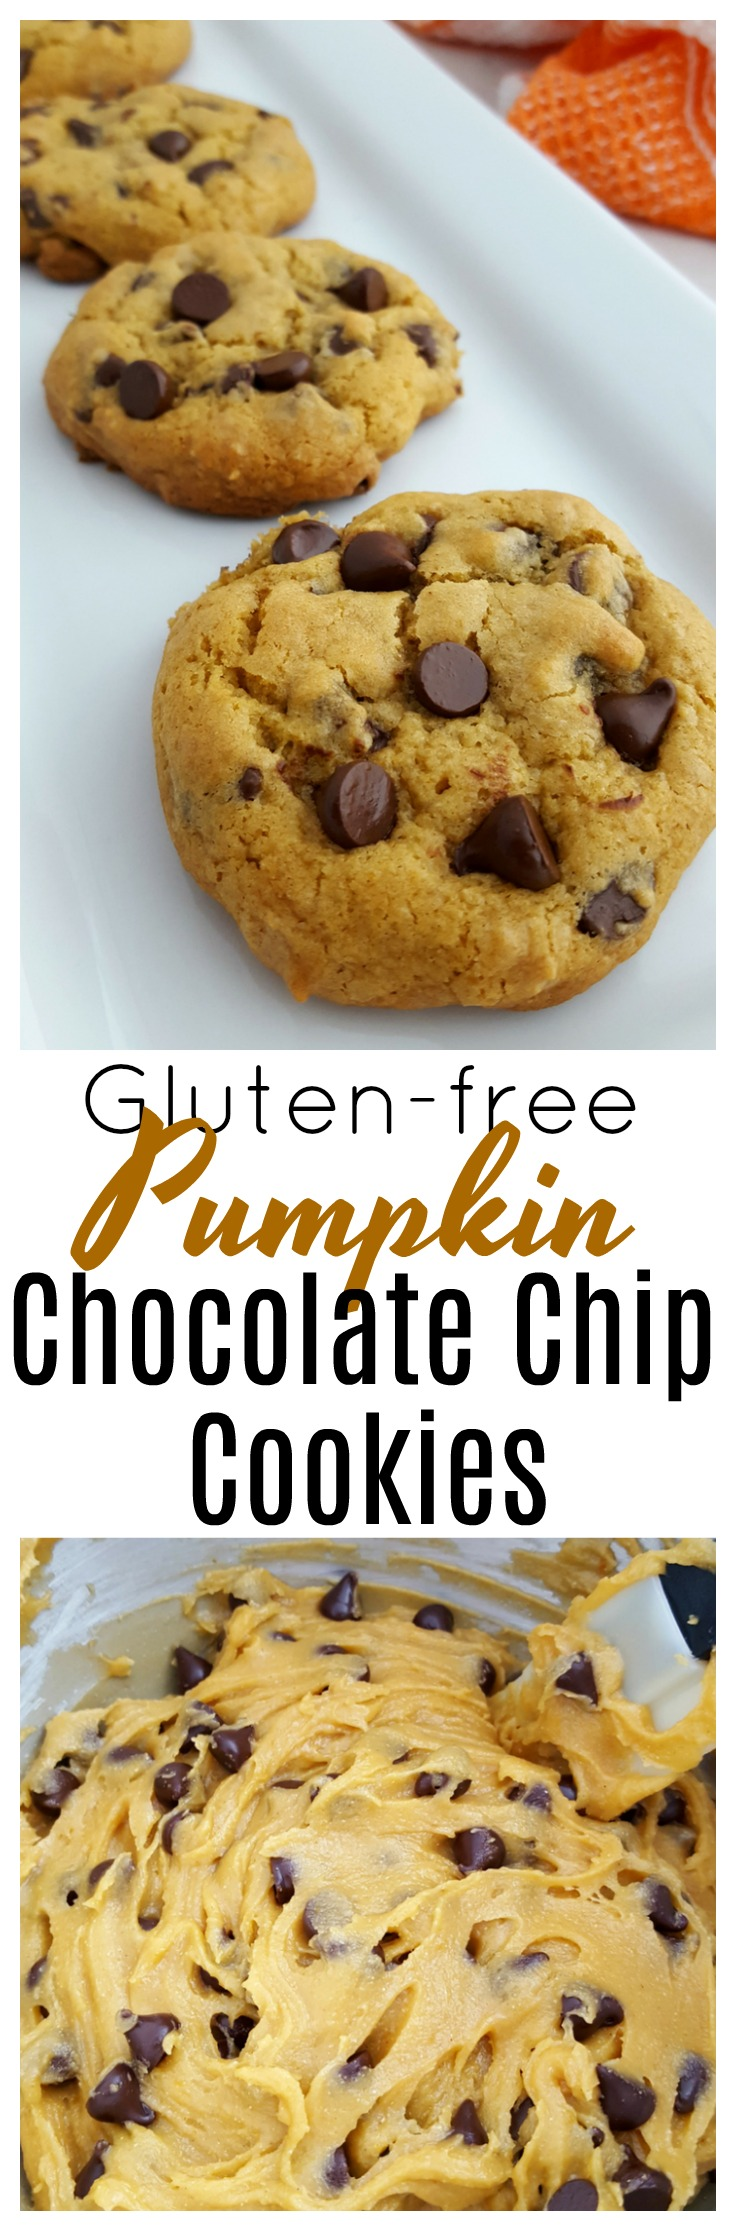 These soft and tender gluten free pumpkin chocolate chip cookies make the perfect fall treat! They are easy to make and will be a family favorite!